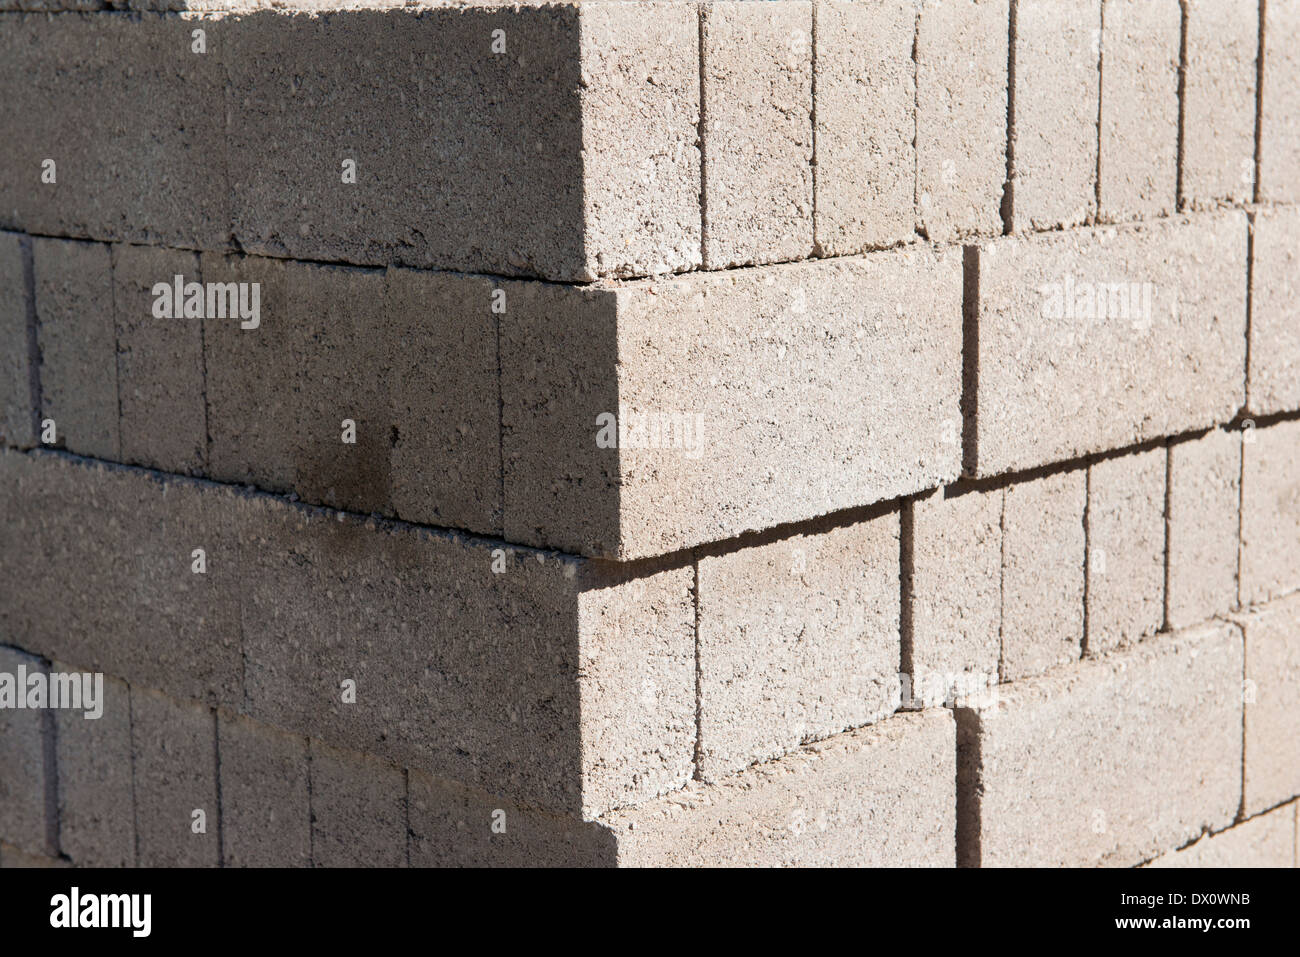 A pile of breeze blocks on a construction site - Stock Image